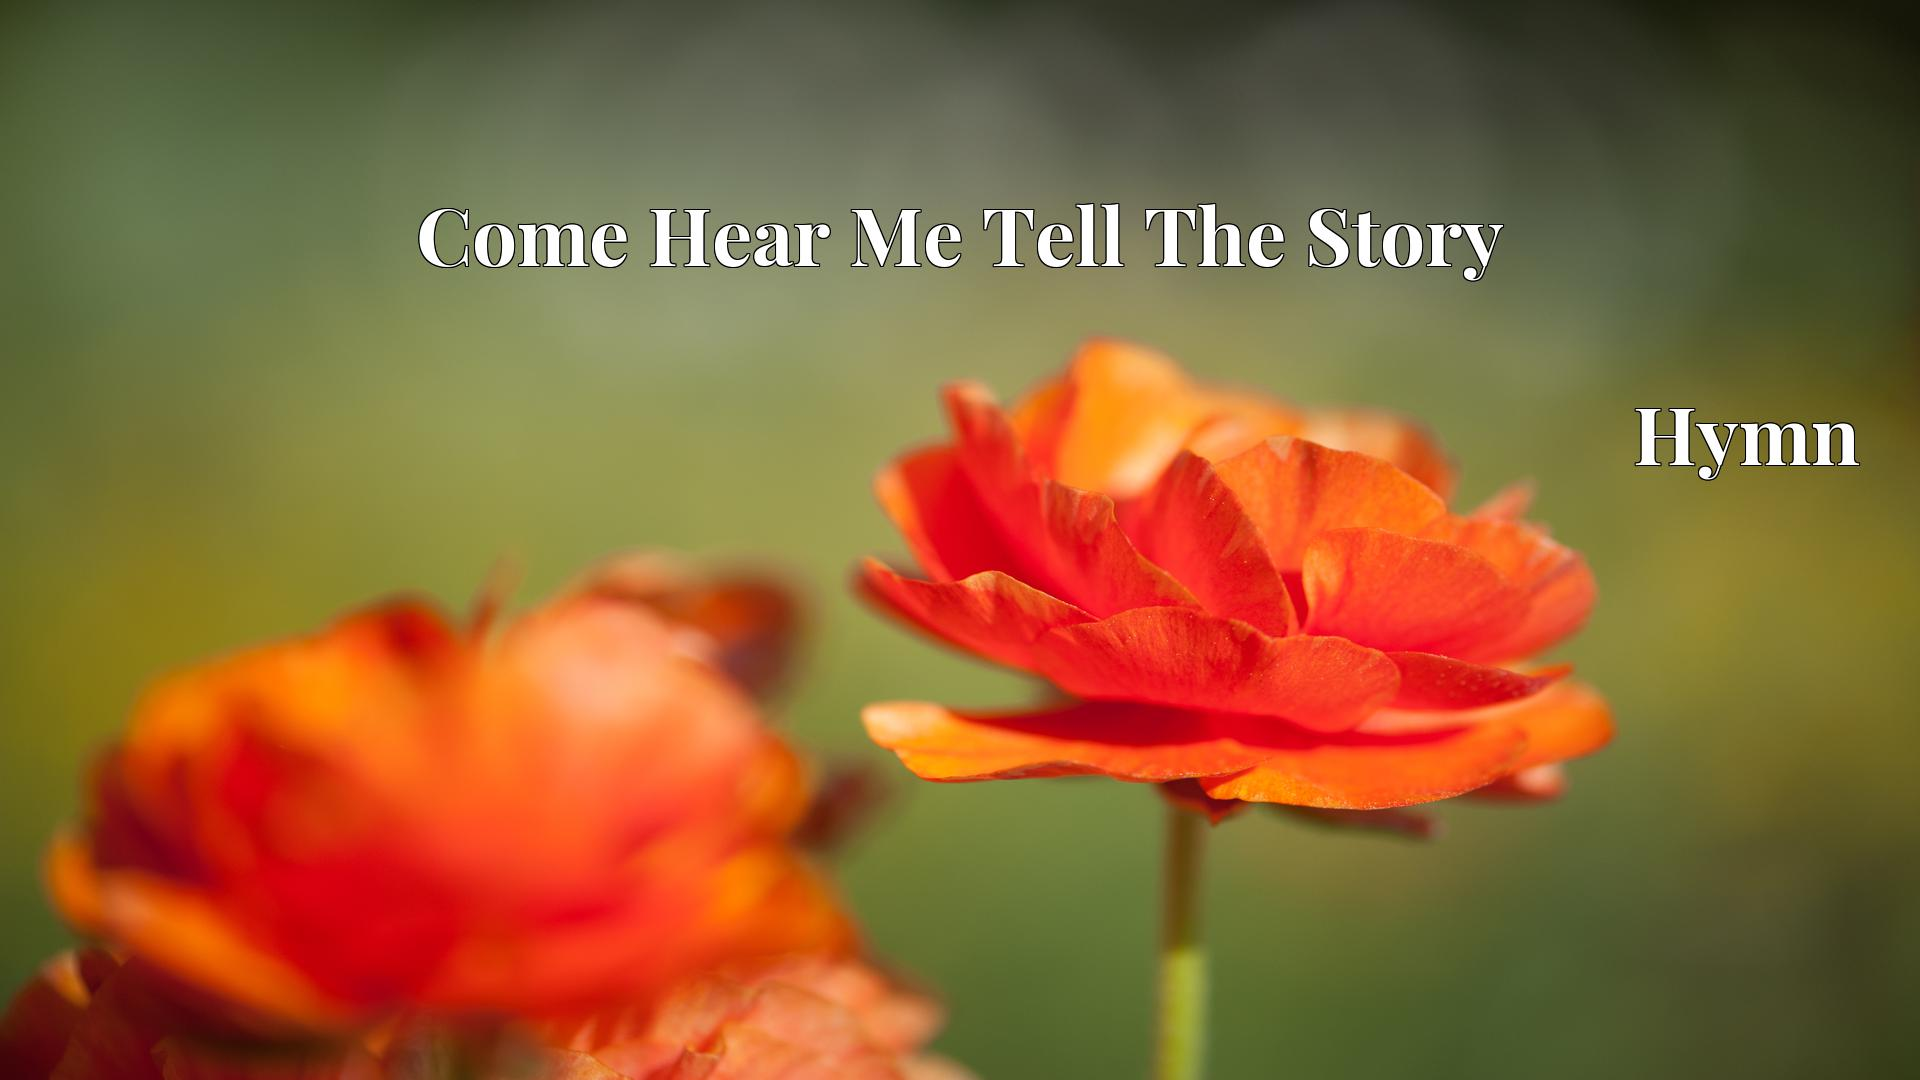 Come Hear Me Tell The Story Hymn Lyric